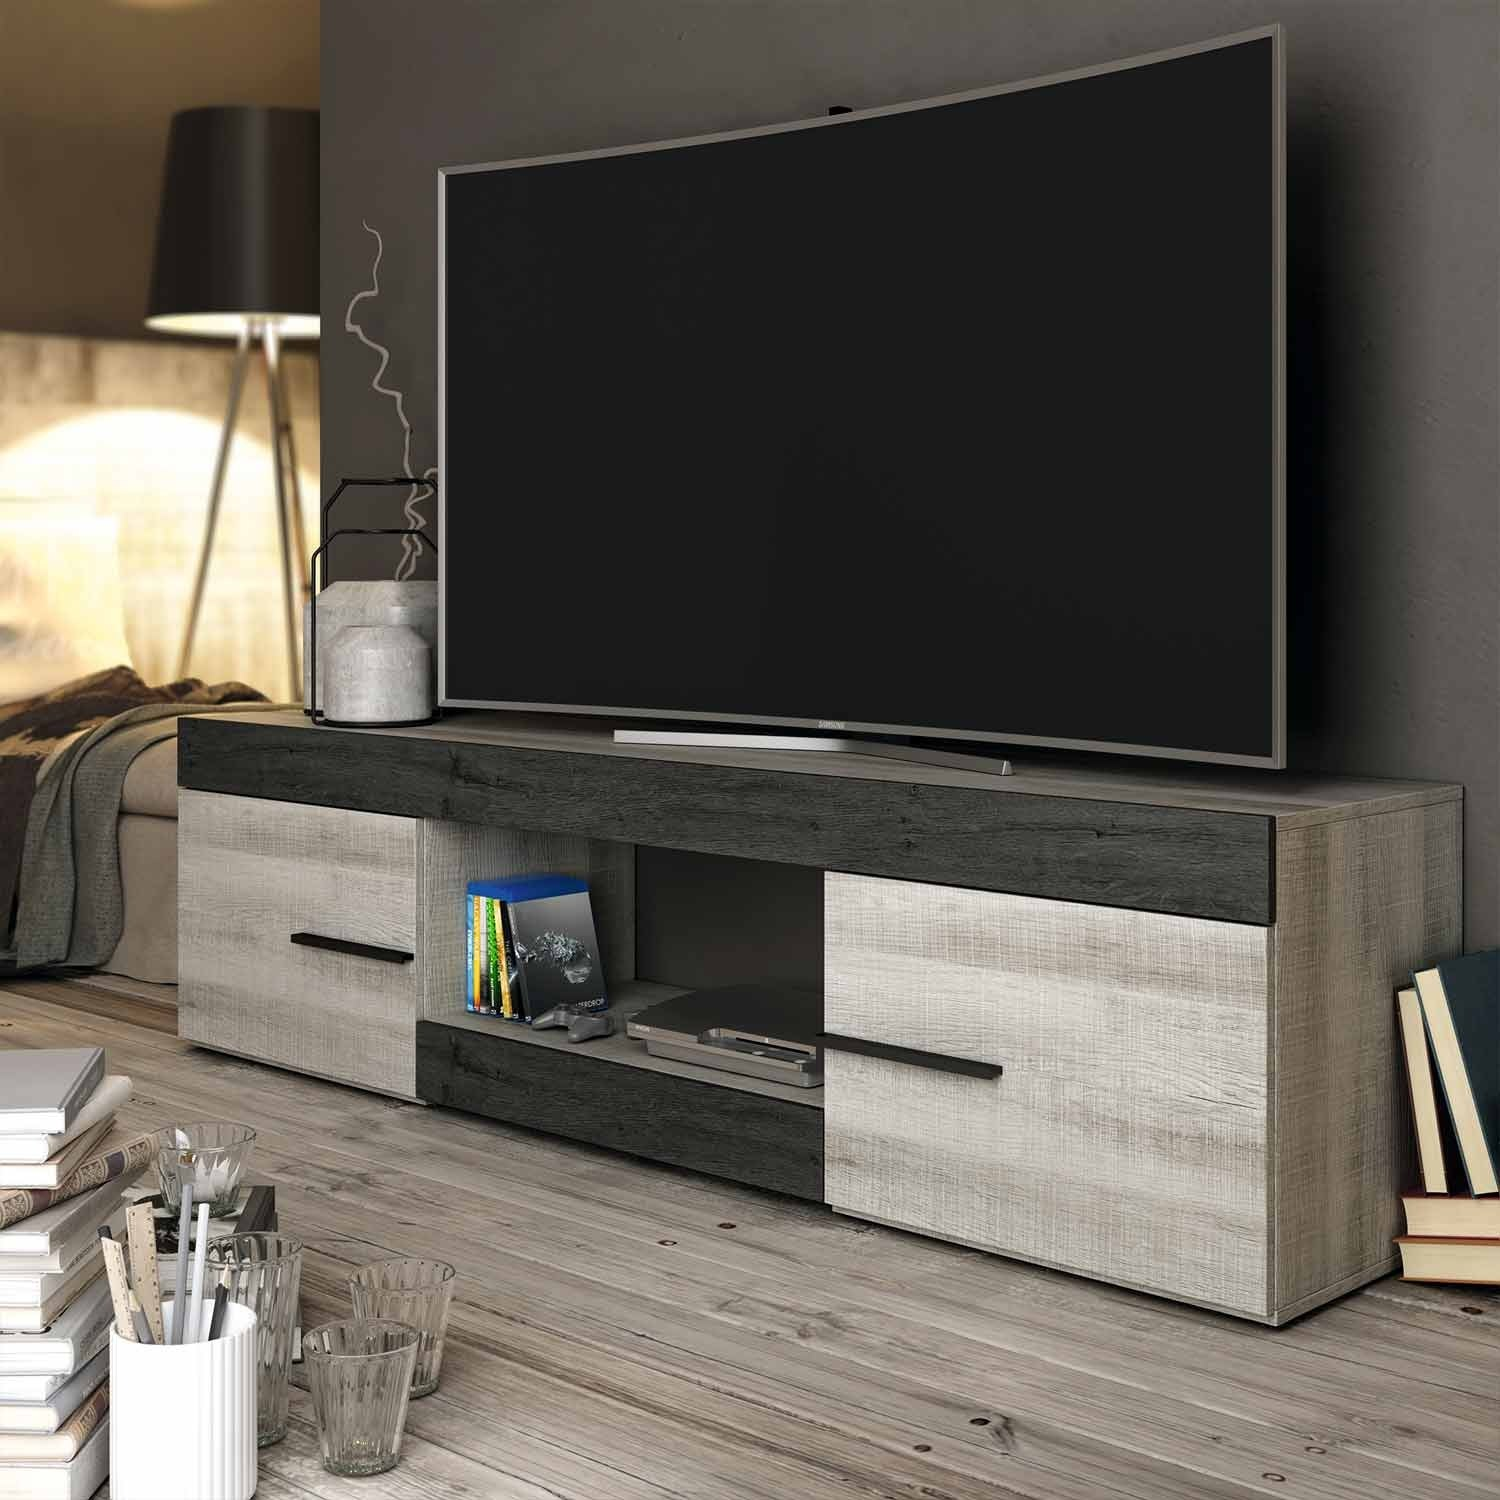 Mueble de tv 180 cm baikal for Mueble salon 180 cm